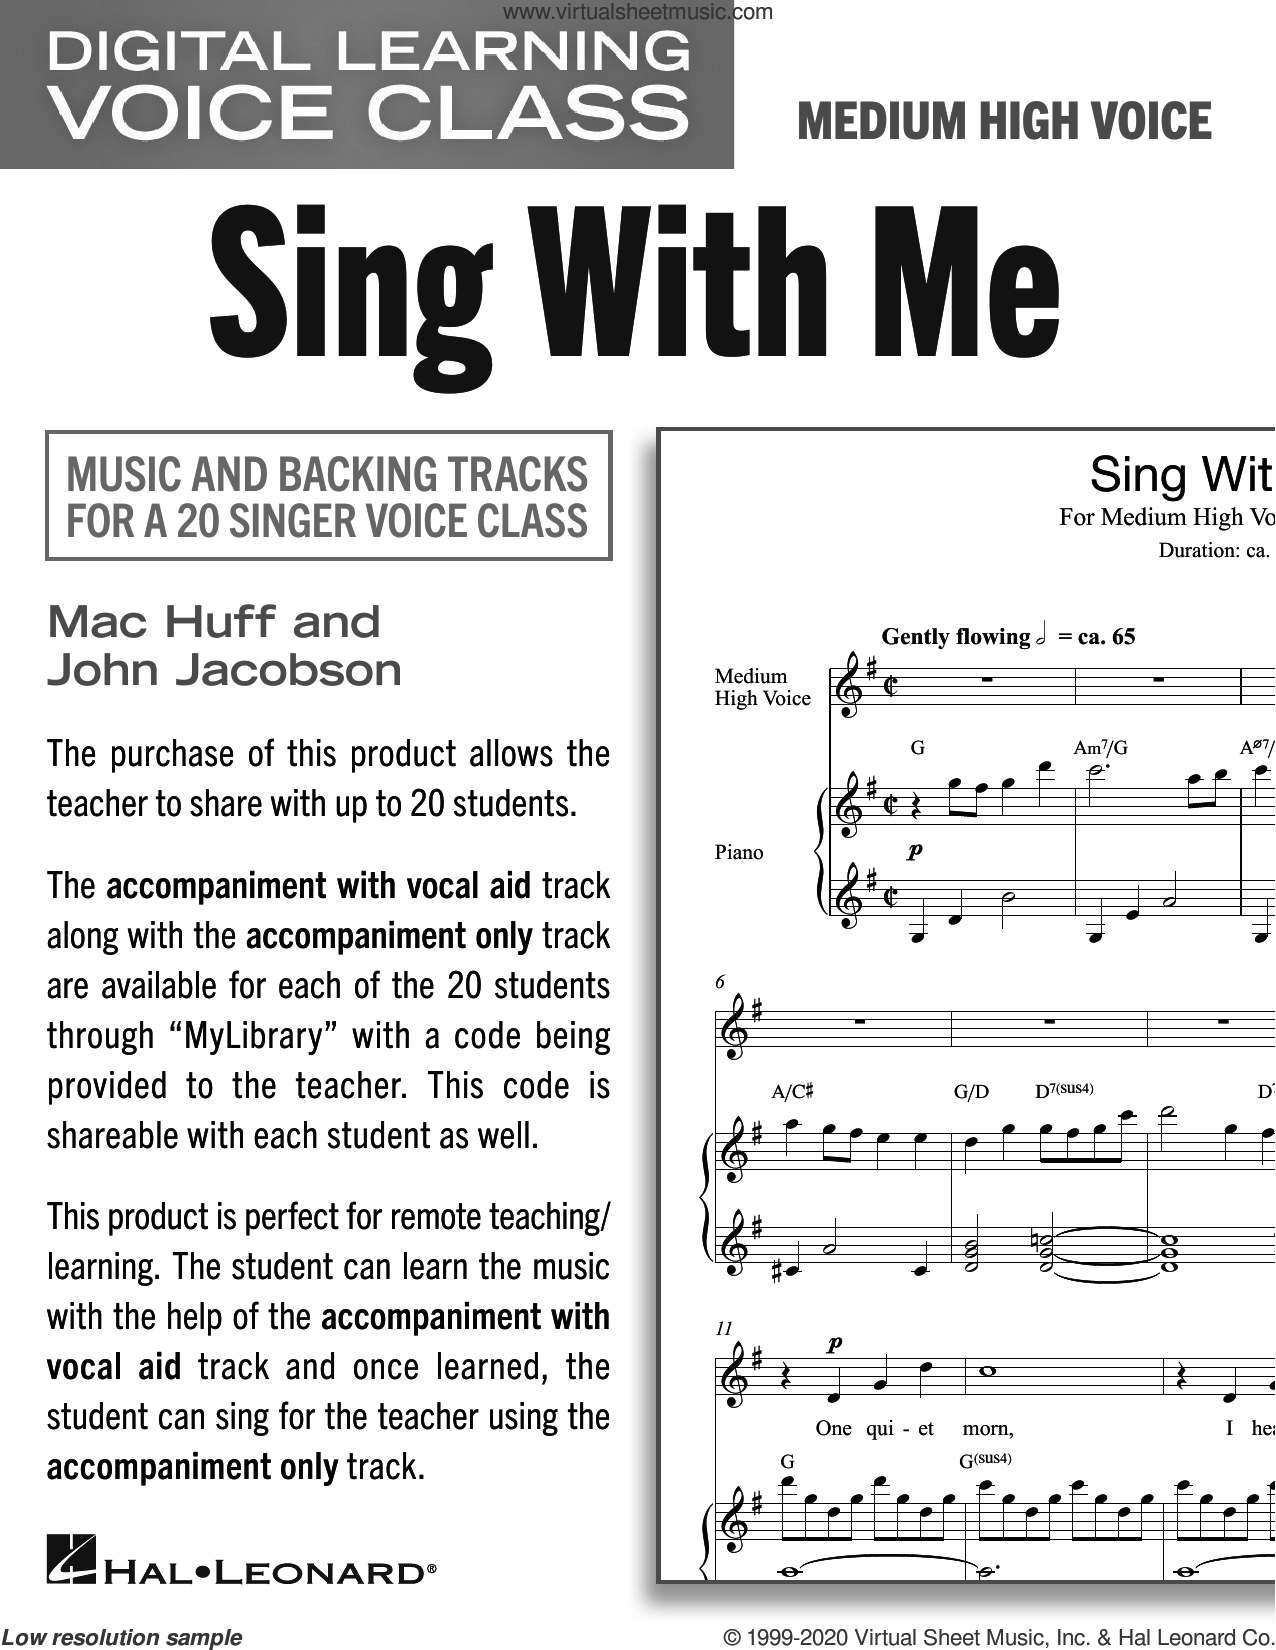 Sing With Me (Medium High Voice) (includes Audio) sheet music for voice and piano (Medium High Voice) by Mac Huff and John Jacobson, John Jacobson and Mac Huff, intermediate skill level